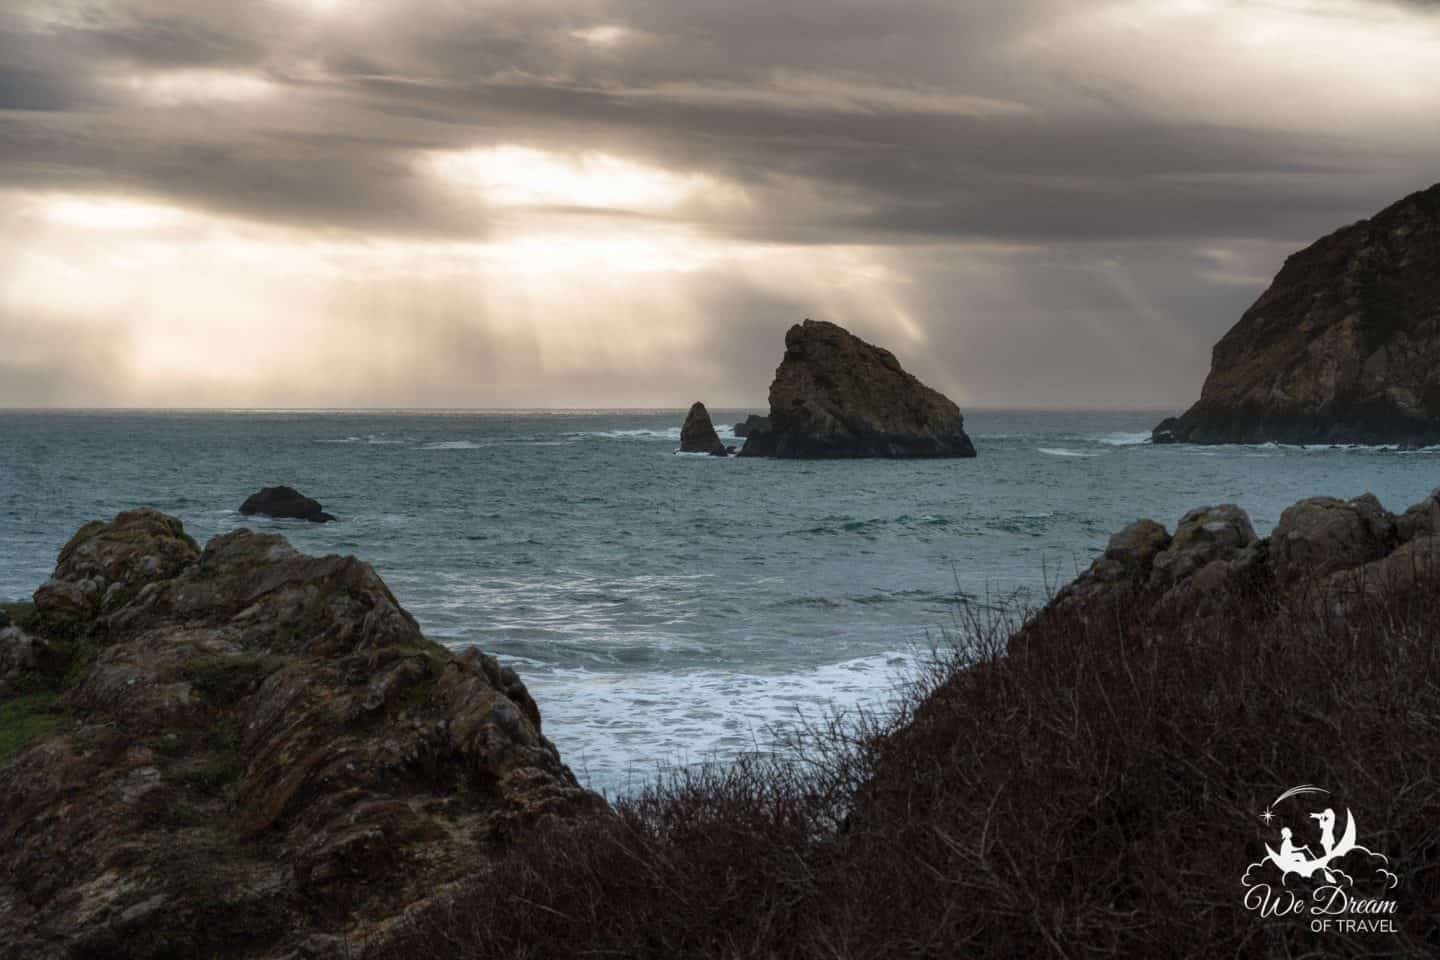 Moody day photography on the Oregon Coast